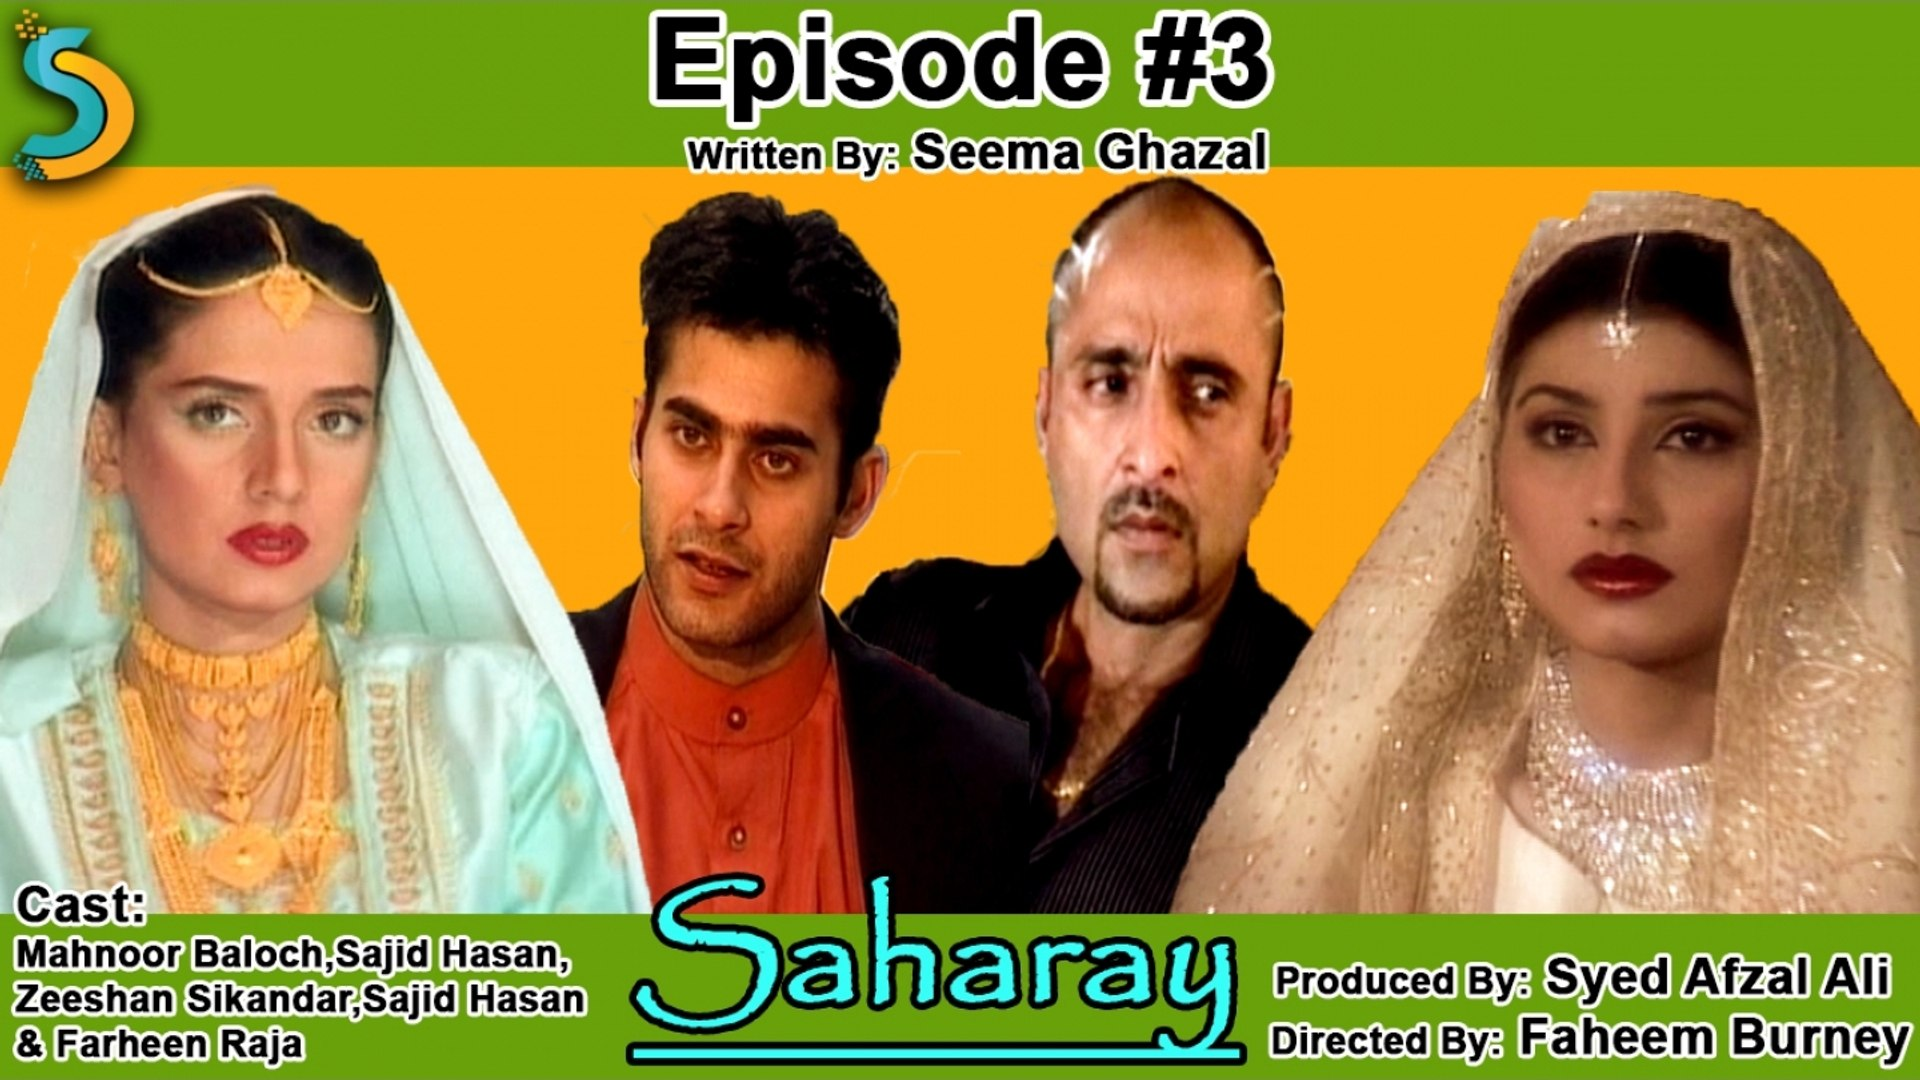 Syed Afzal Ali Ft. Sajid Hasan - Saharay Drama Serial | Episode #3